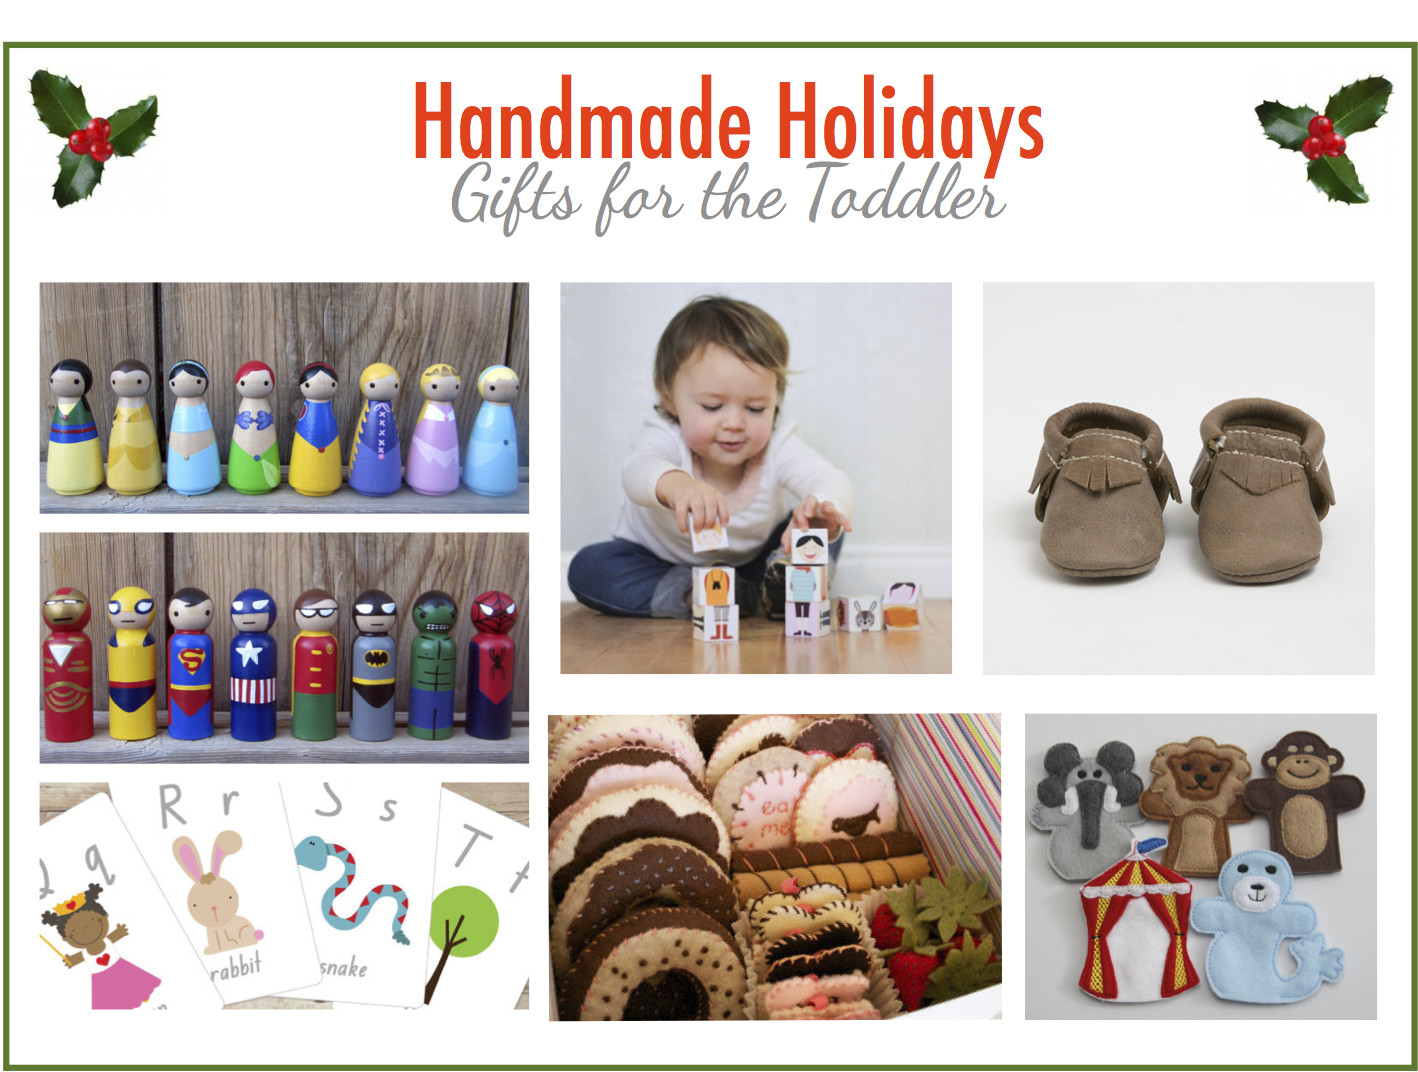 Handmade Gifts From Toddlers  Strawberry Swing and other things Handmade Holiday Gift